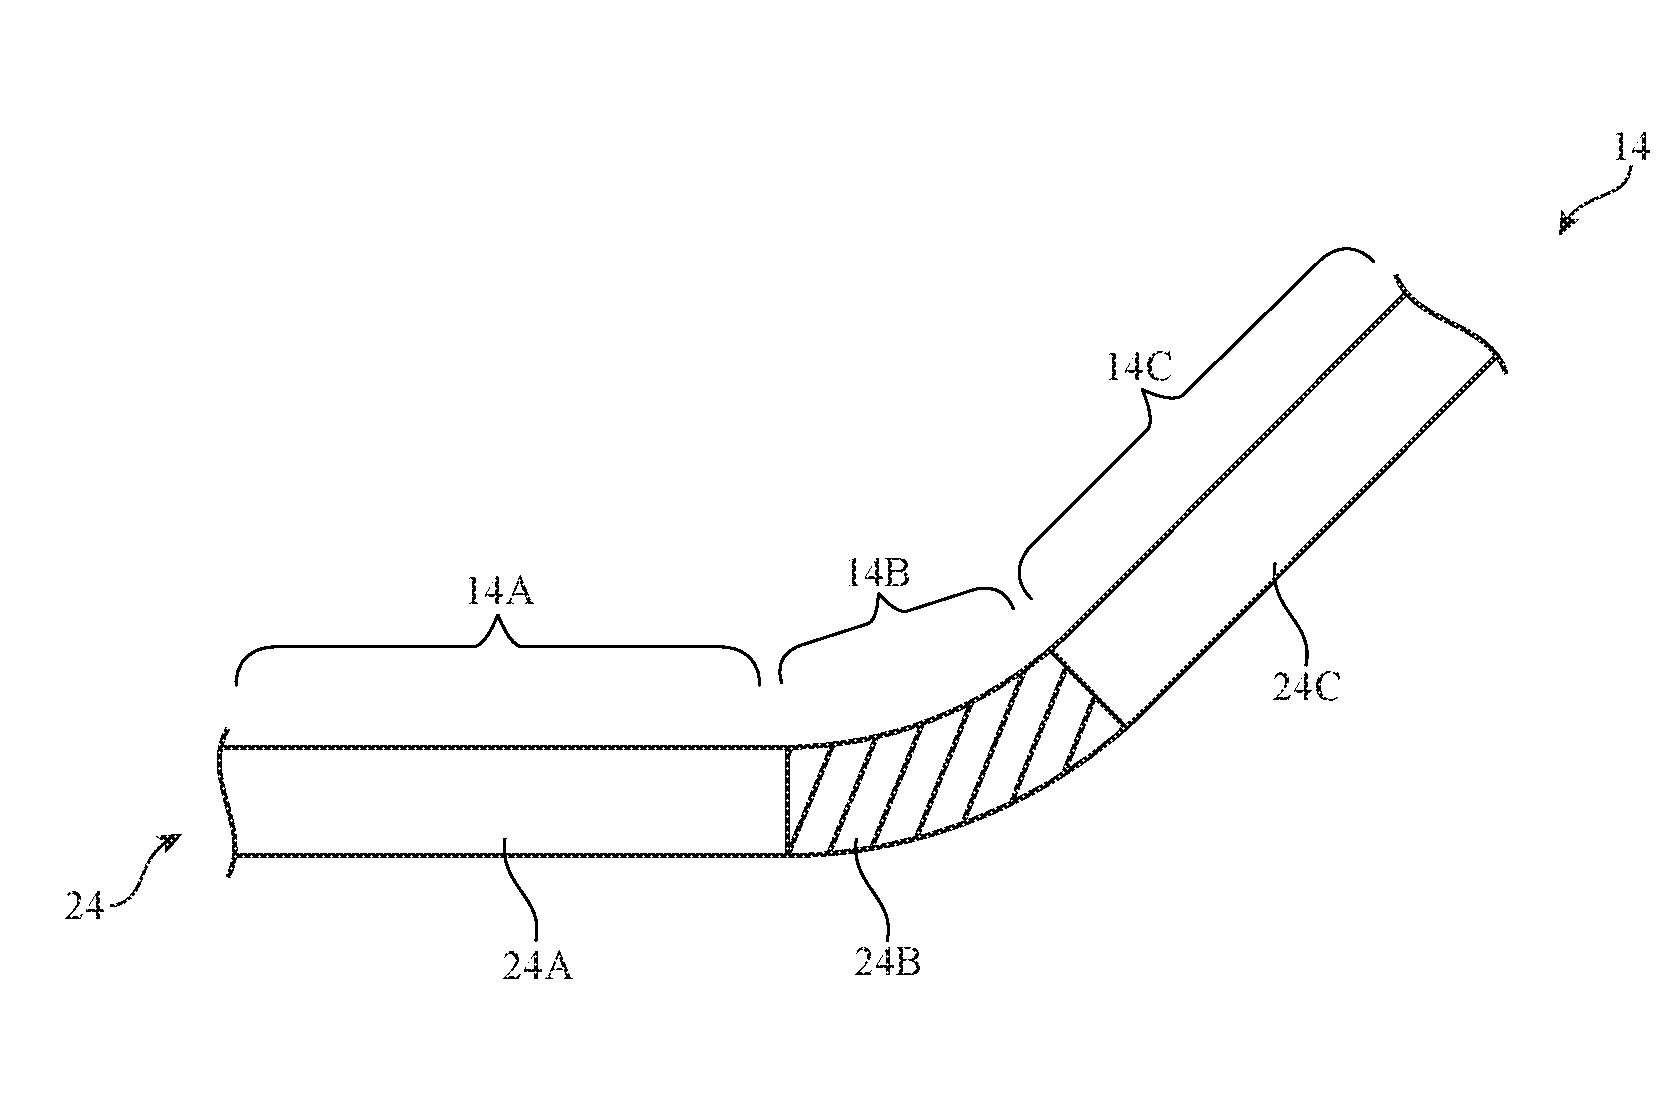 Foldable device illustration from patent US10020462B1